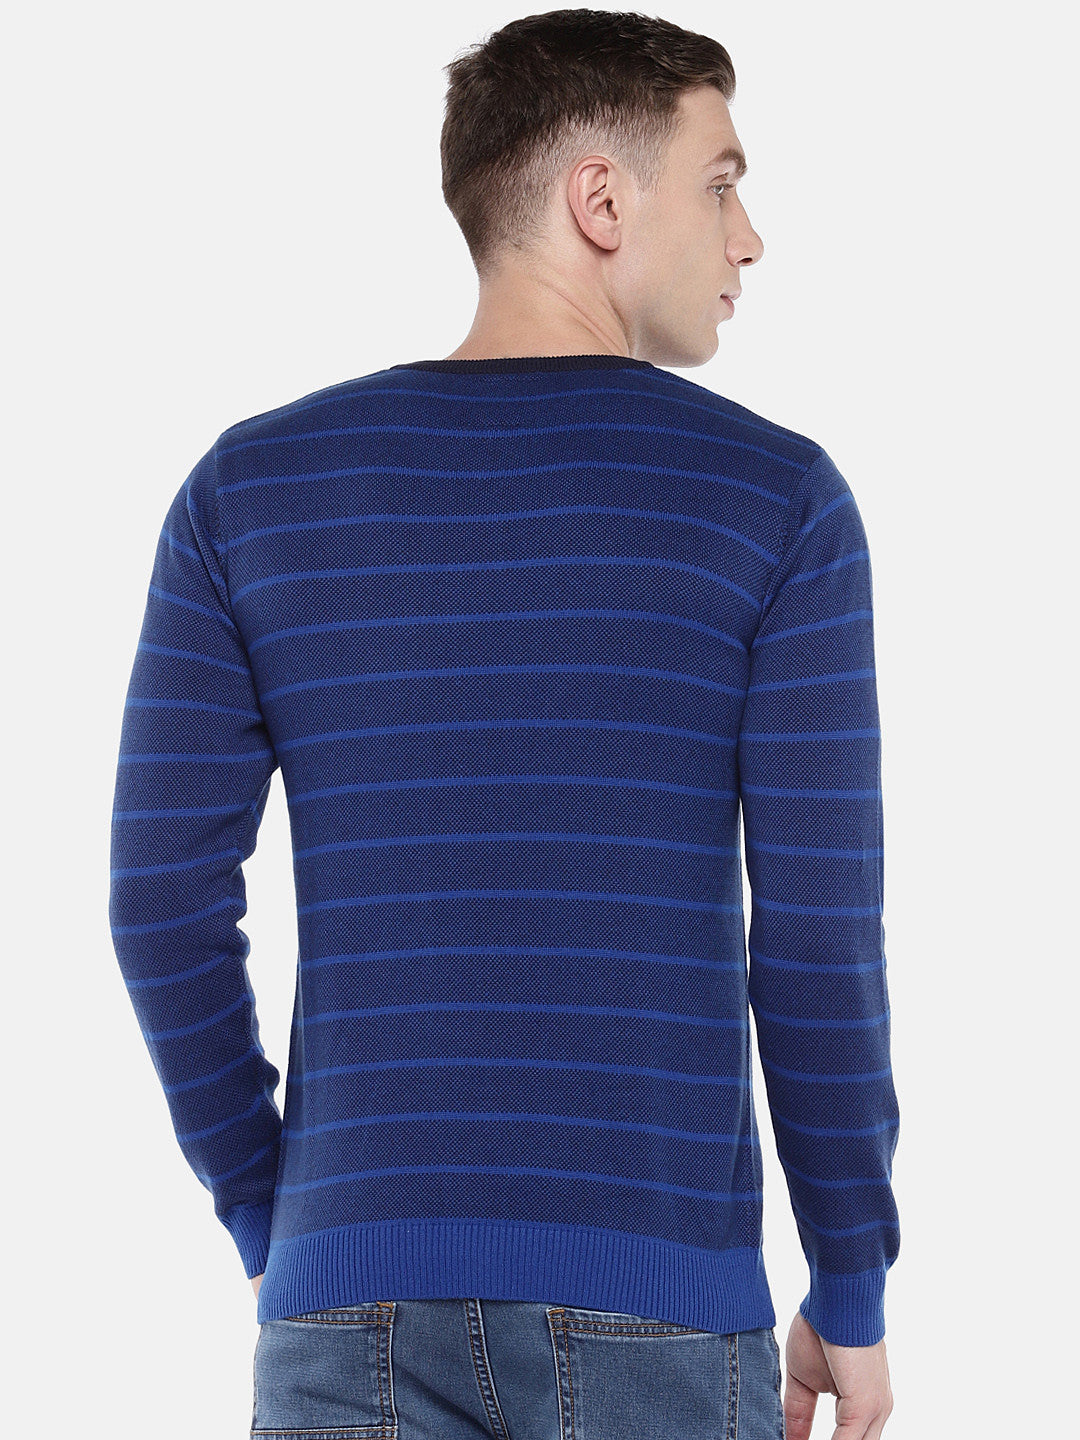 Blue Striped Pullover Sweater-3